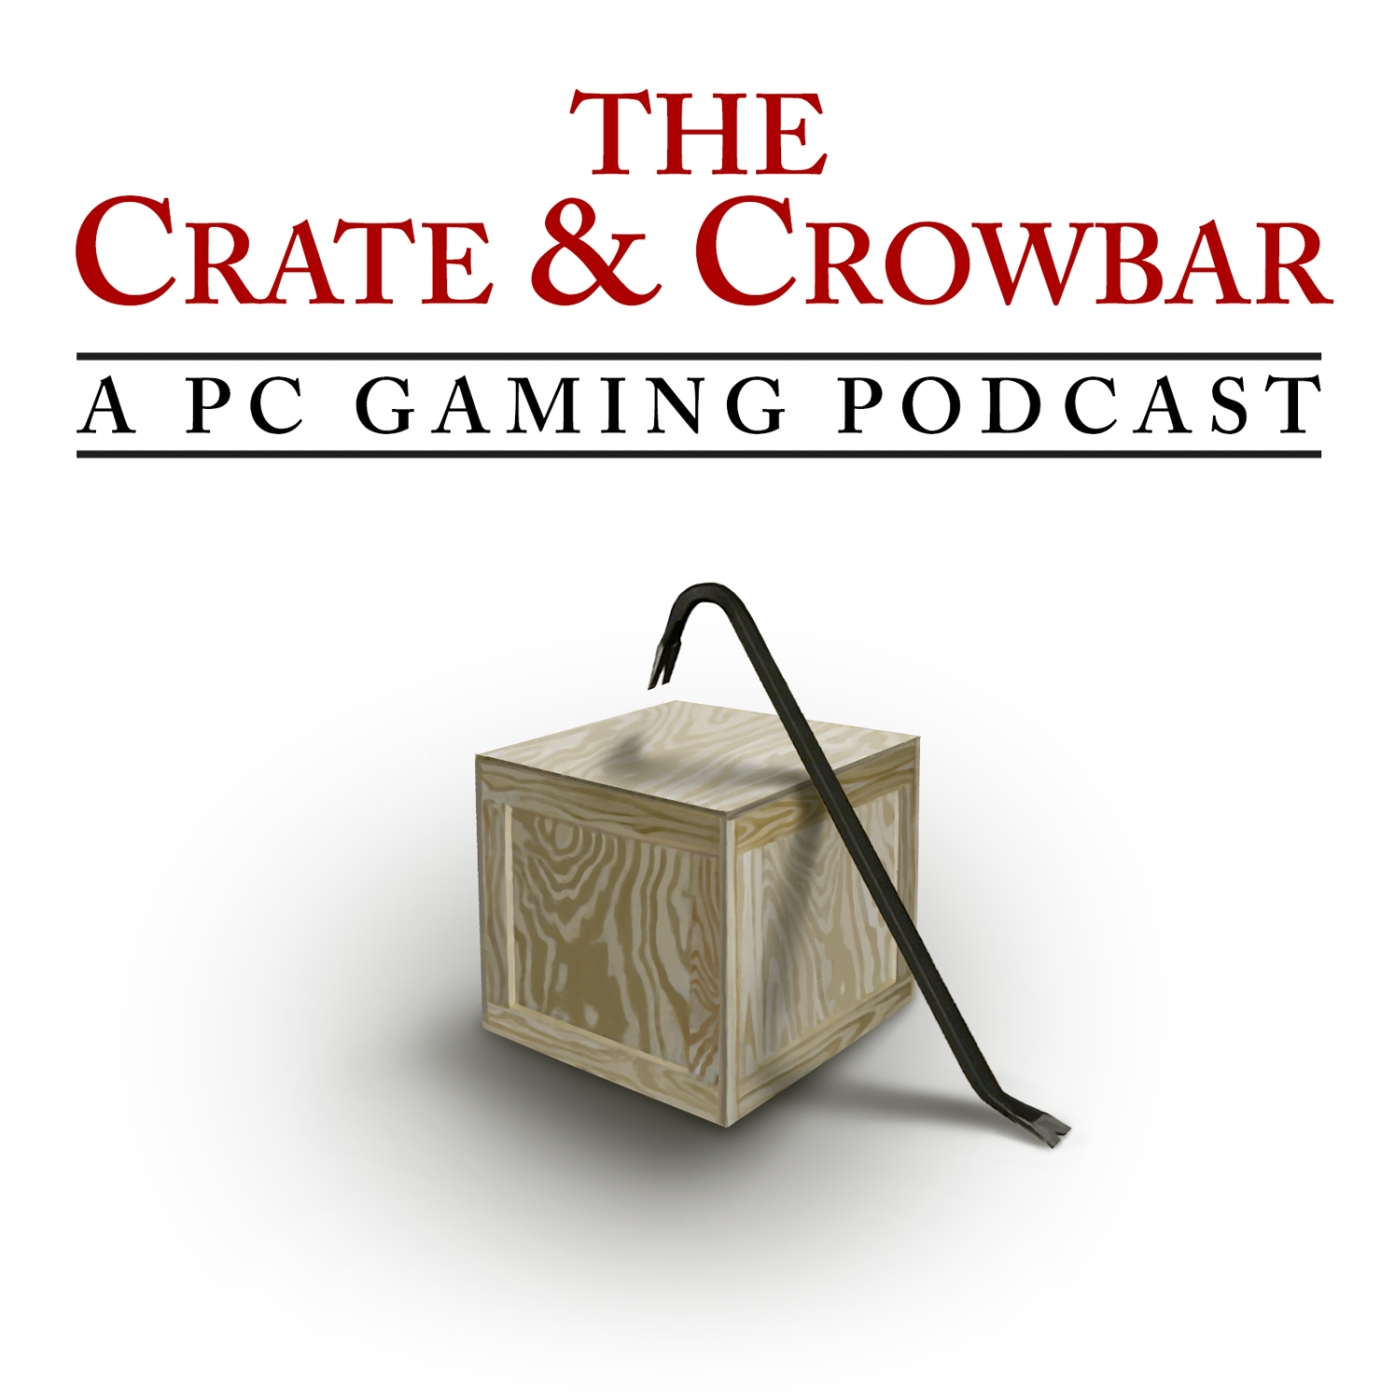 The Crate and Crowbar